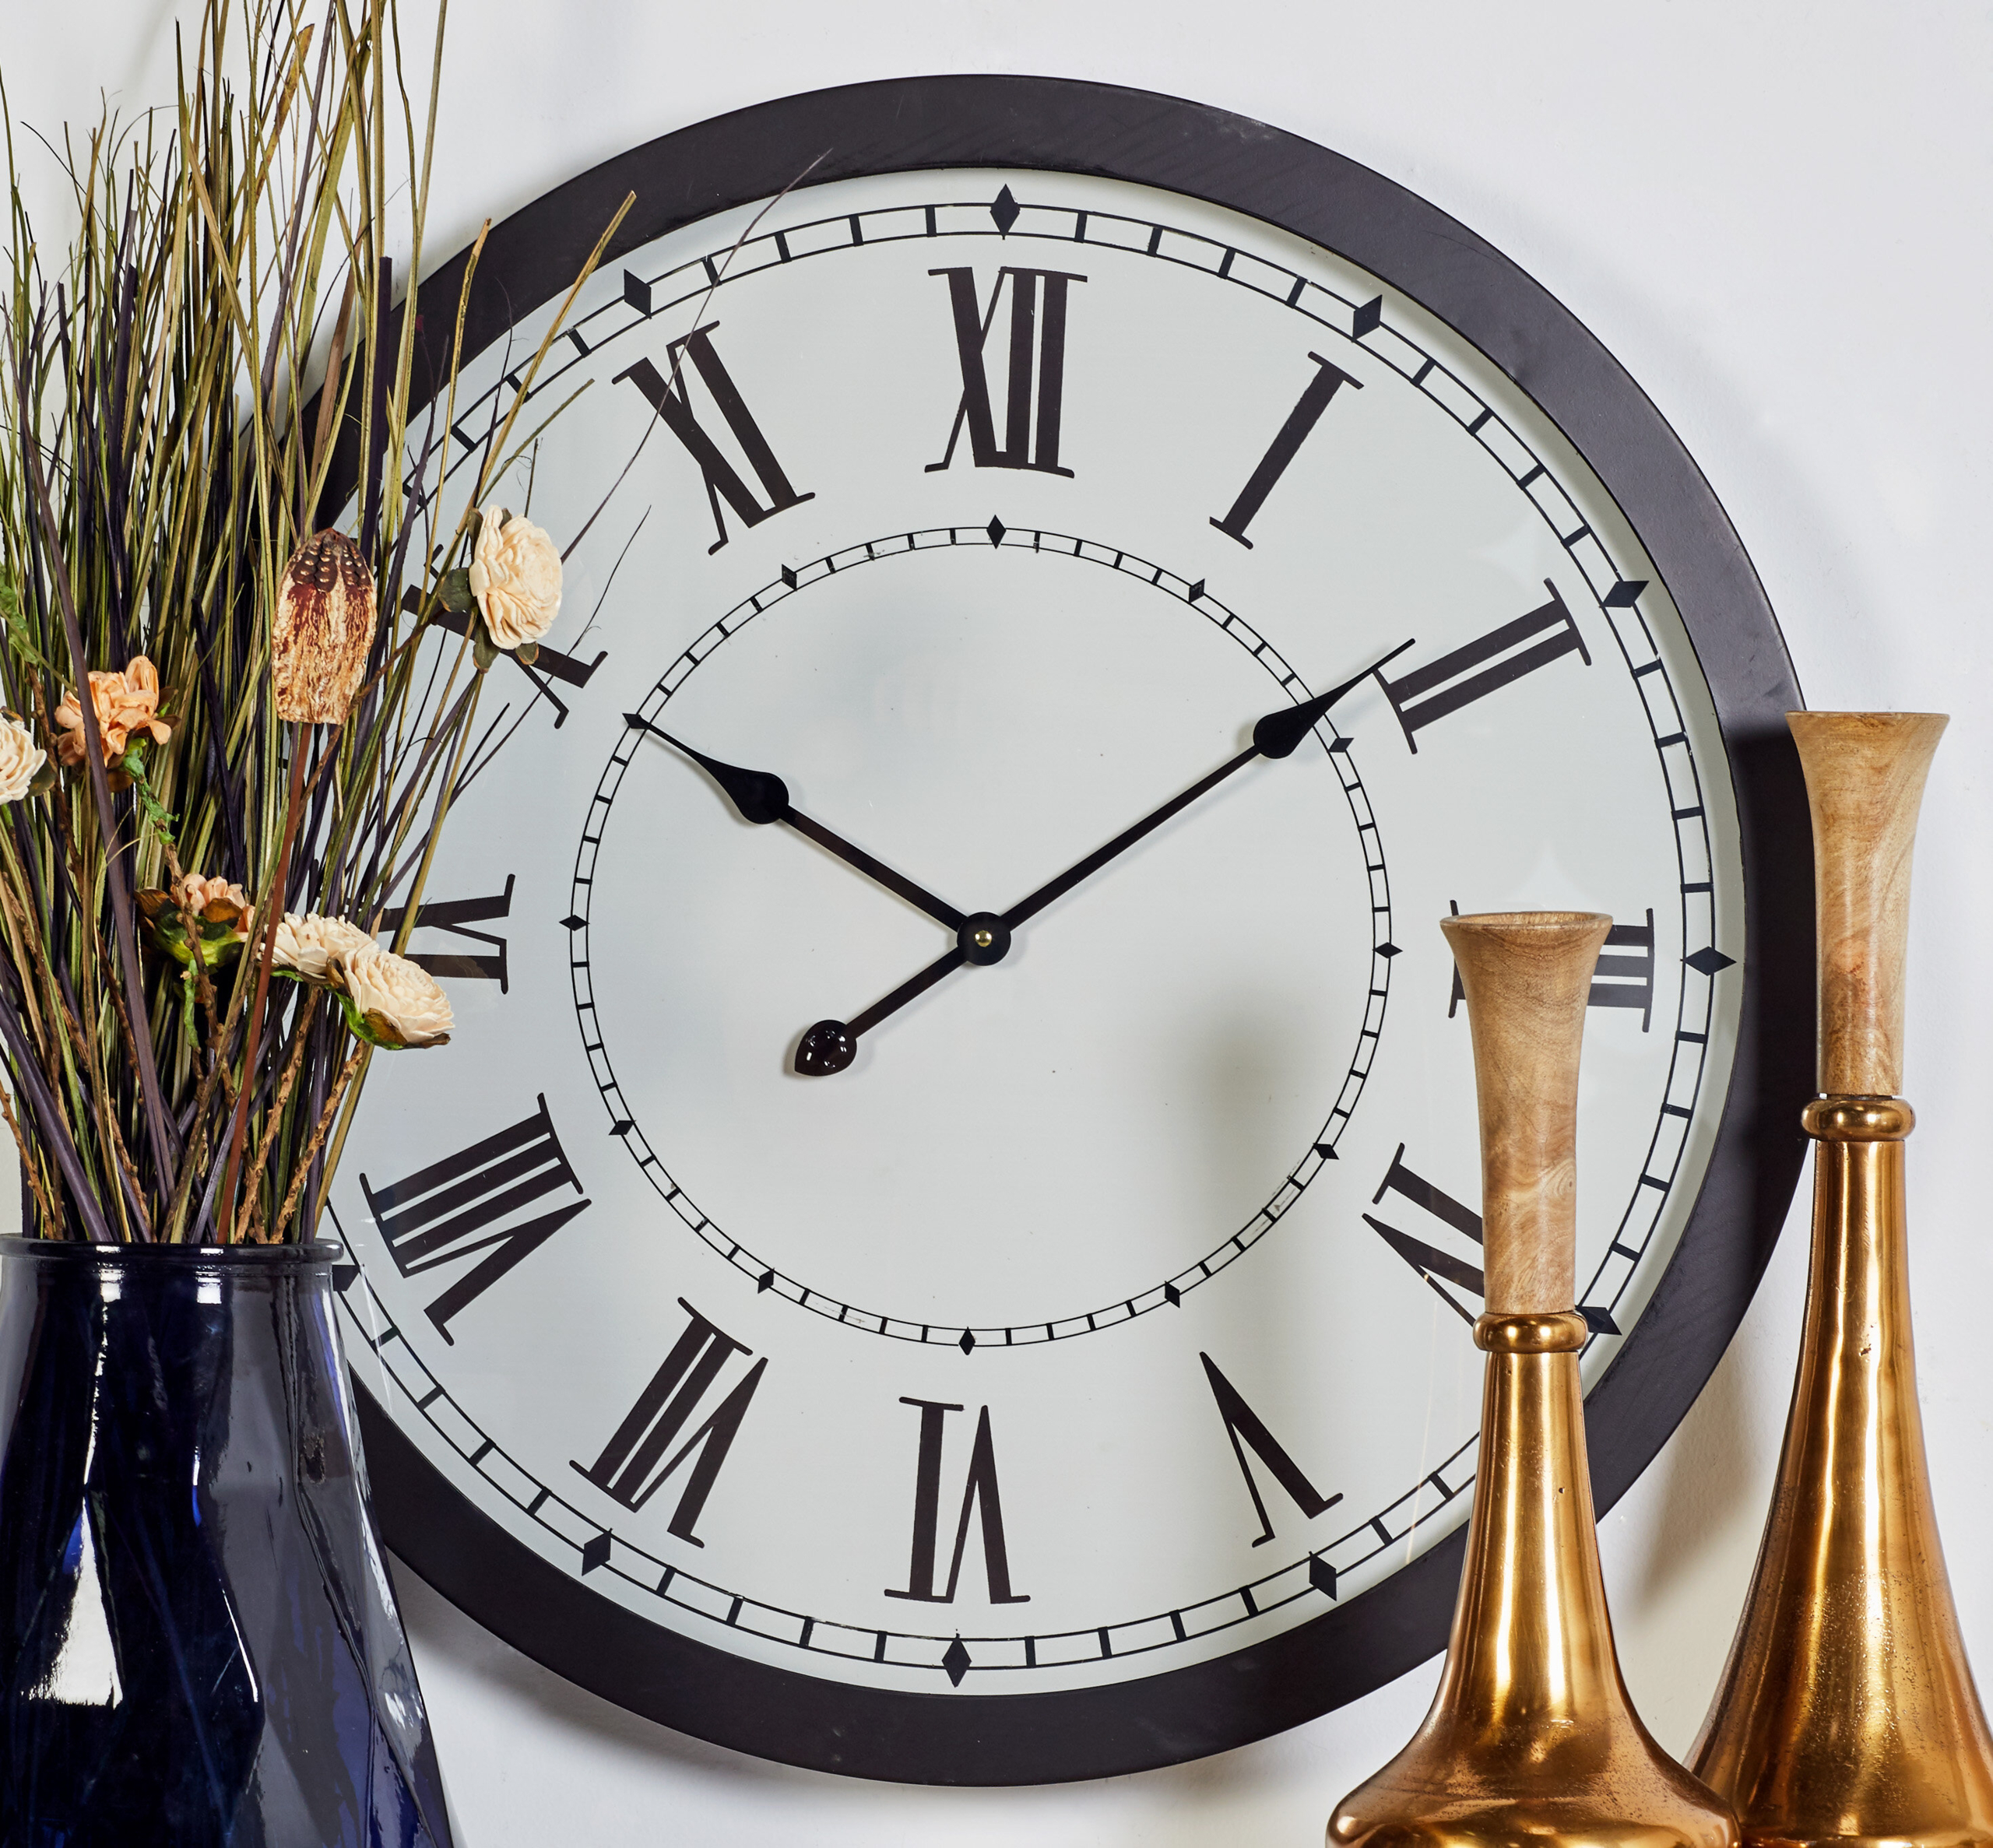 Decorative Wall Clocks For Sale from visualhunt.com